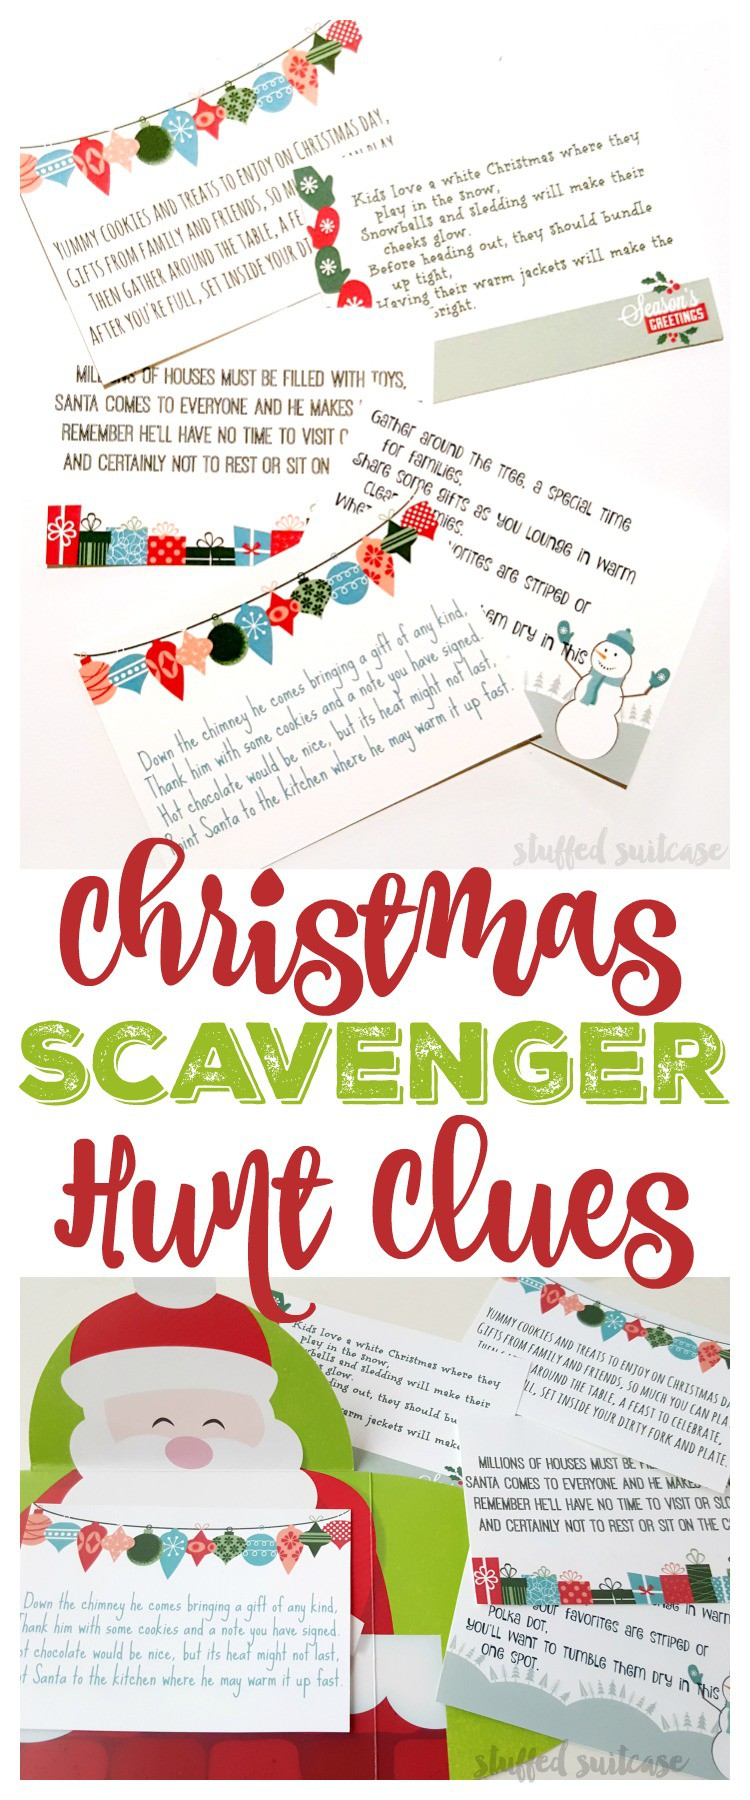 photograph about Christmas Scavenger Hunt Printable Clues identified as Xmas Scavenger Hunt Riddles and Clues